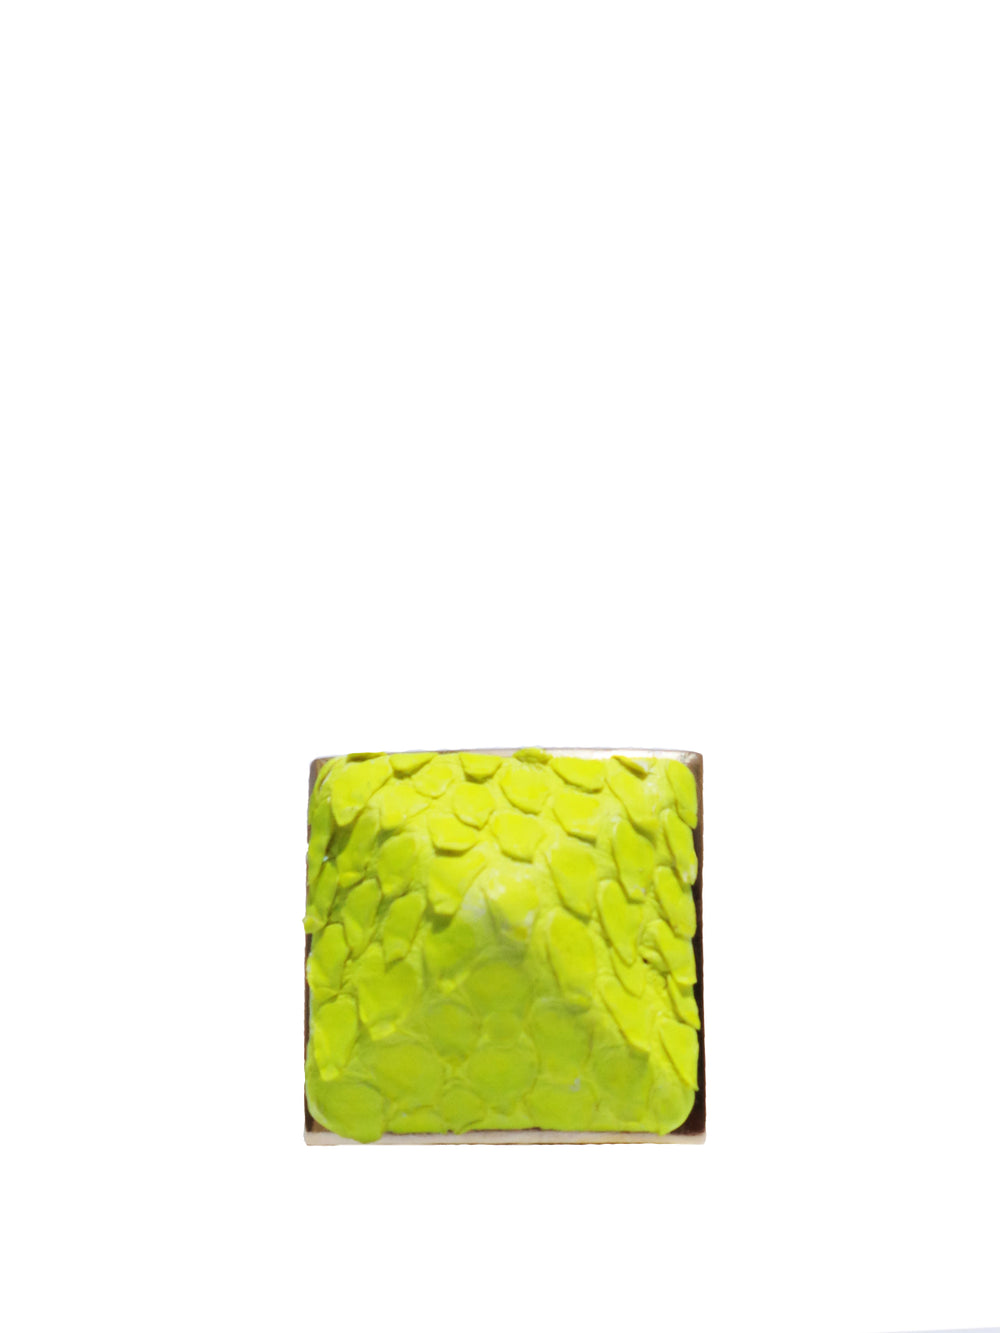 Exotic Pyramid Ring in Neon Yellow, TED ROSSI - elilhaam.com